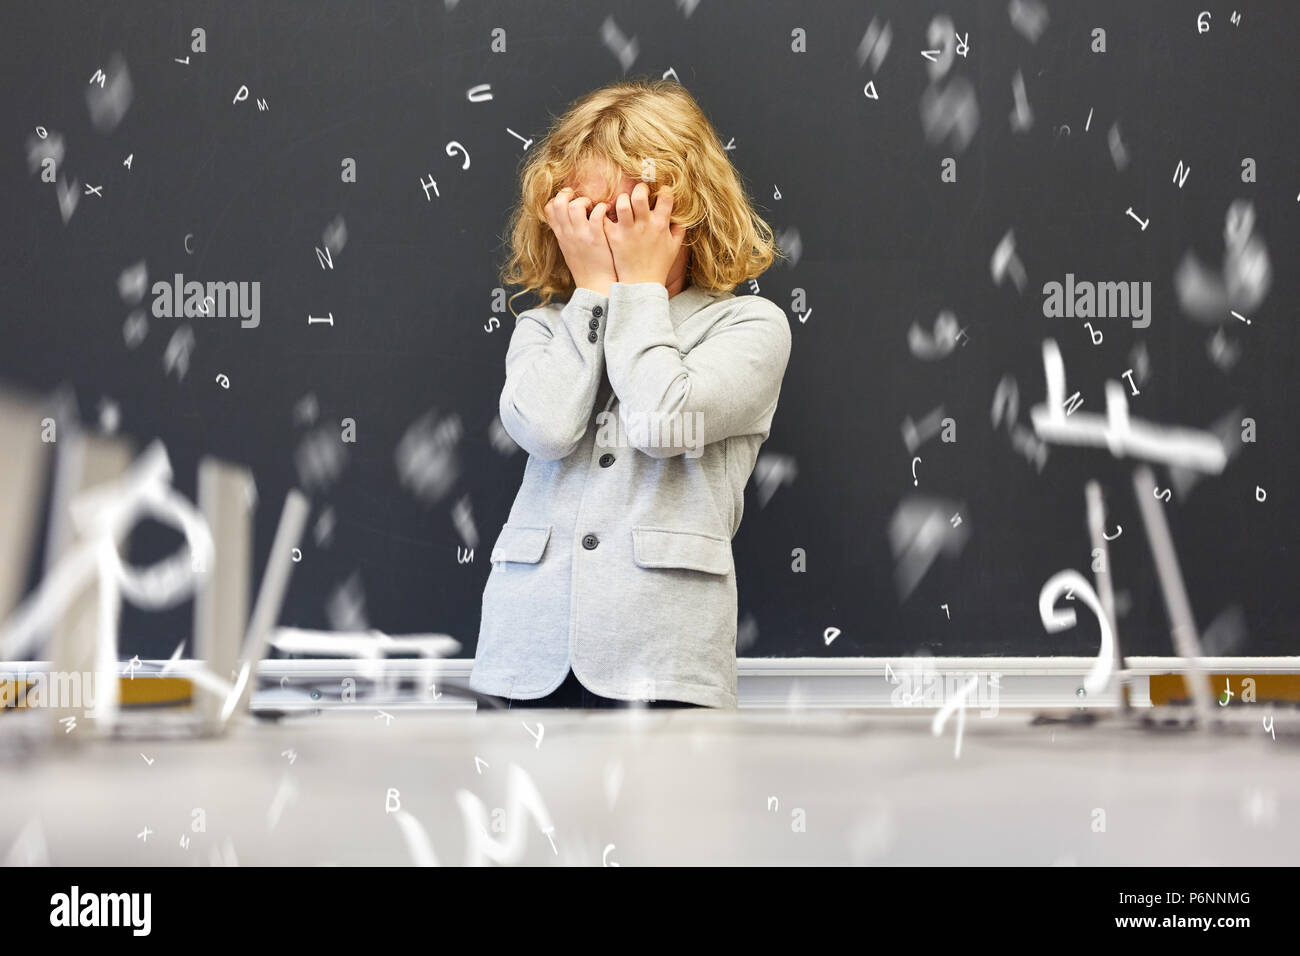 Frightened child with dyslexia in front of blackboard in elementary school - Stock Image